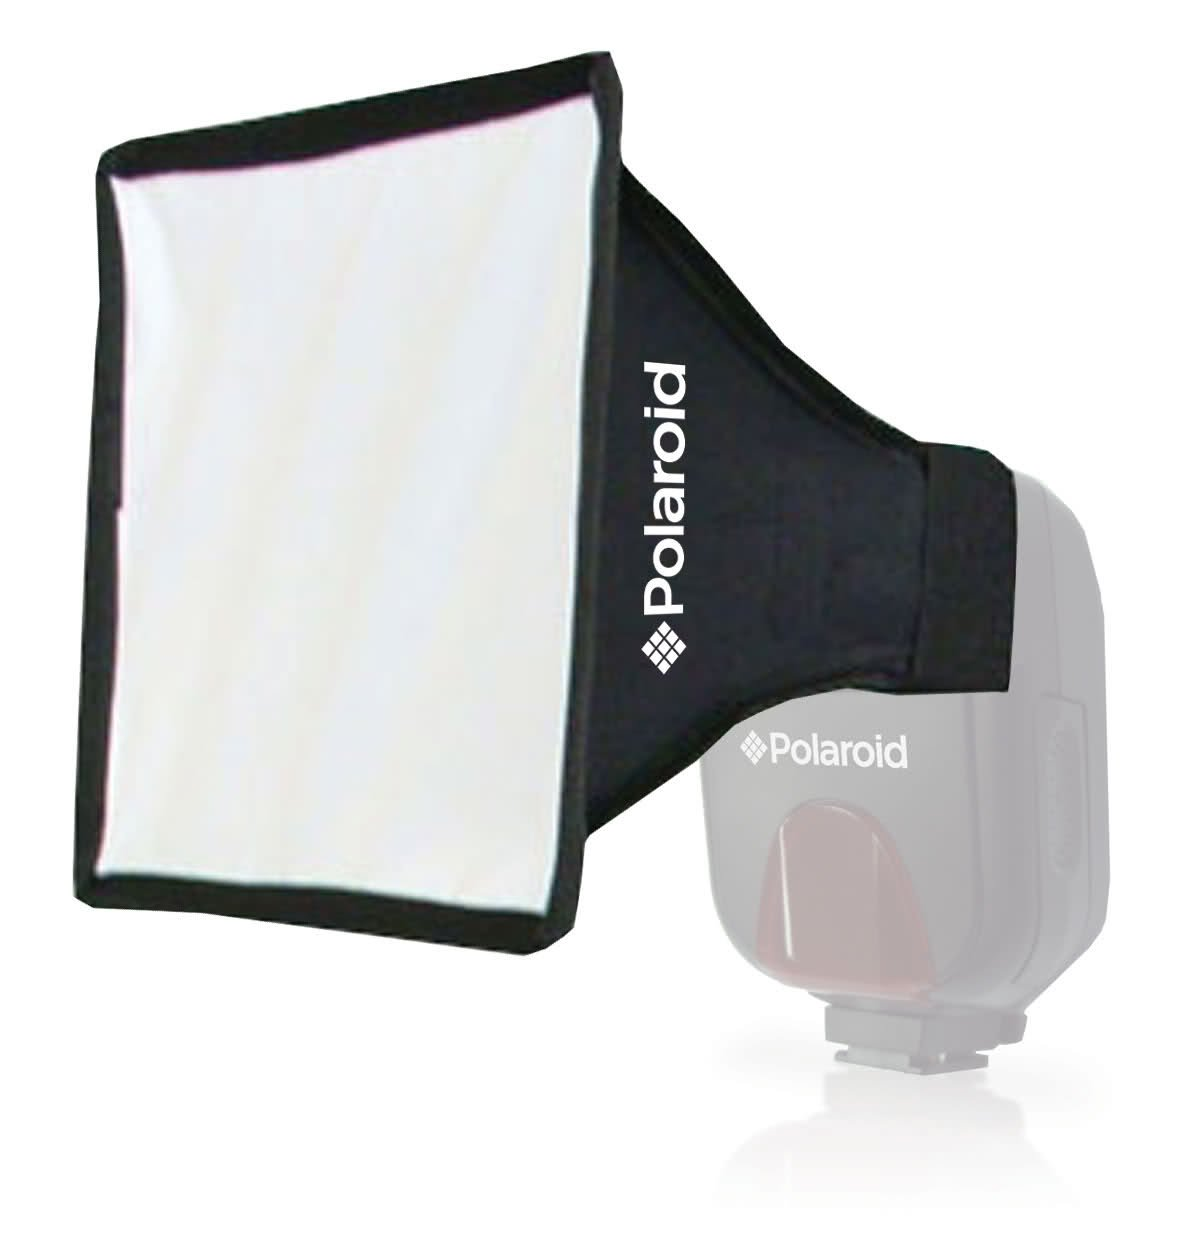 Polaroid Universal Studio Soft Box Flash Diffuser (7'' x 6'' Screen) For The Nikon 1 J1, J2, J3, V1, V2, V3, S1, D40, D40x, D50, D60, D70, D80, D90, D100, D200, D300, D3, D3S, D700, D3000, D5000, D3100, D3200, D3300, D7000, D5100, D4, D4s, D800, D800E, D600